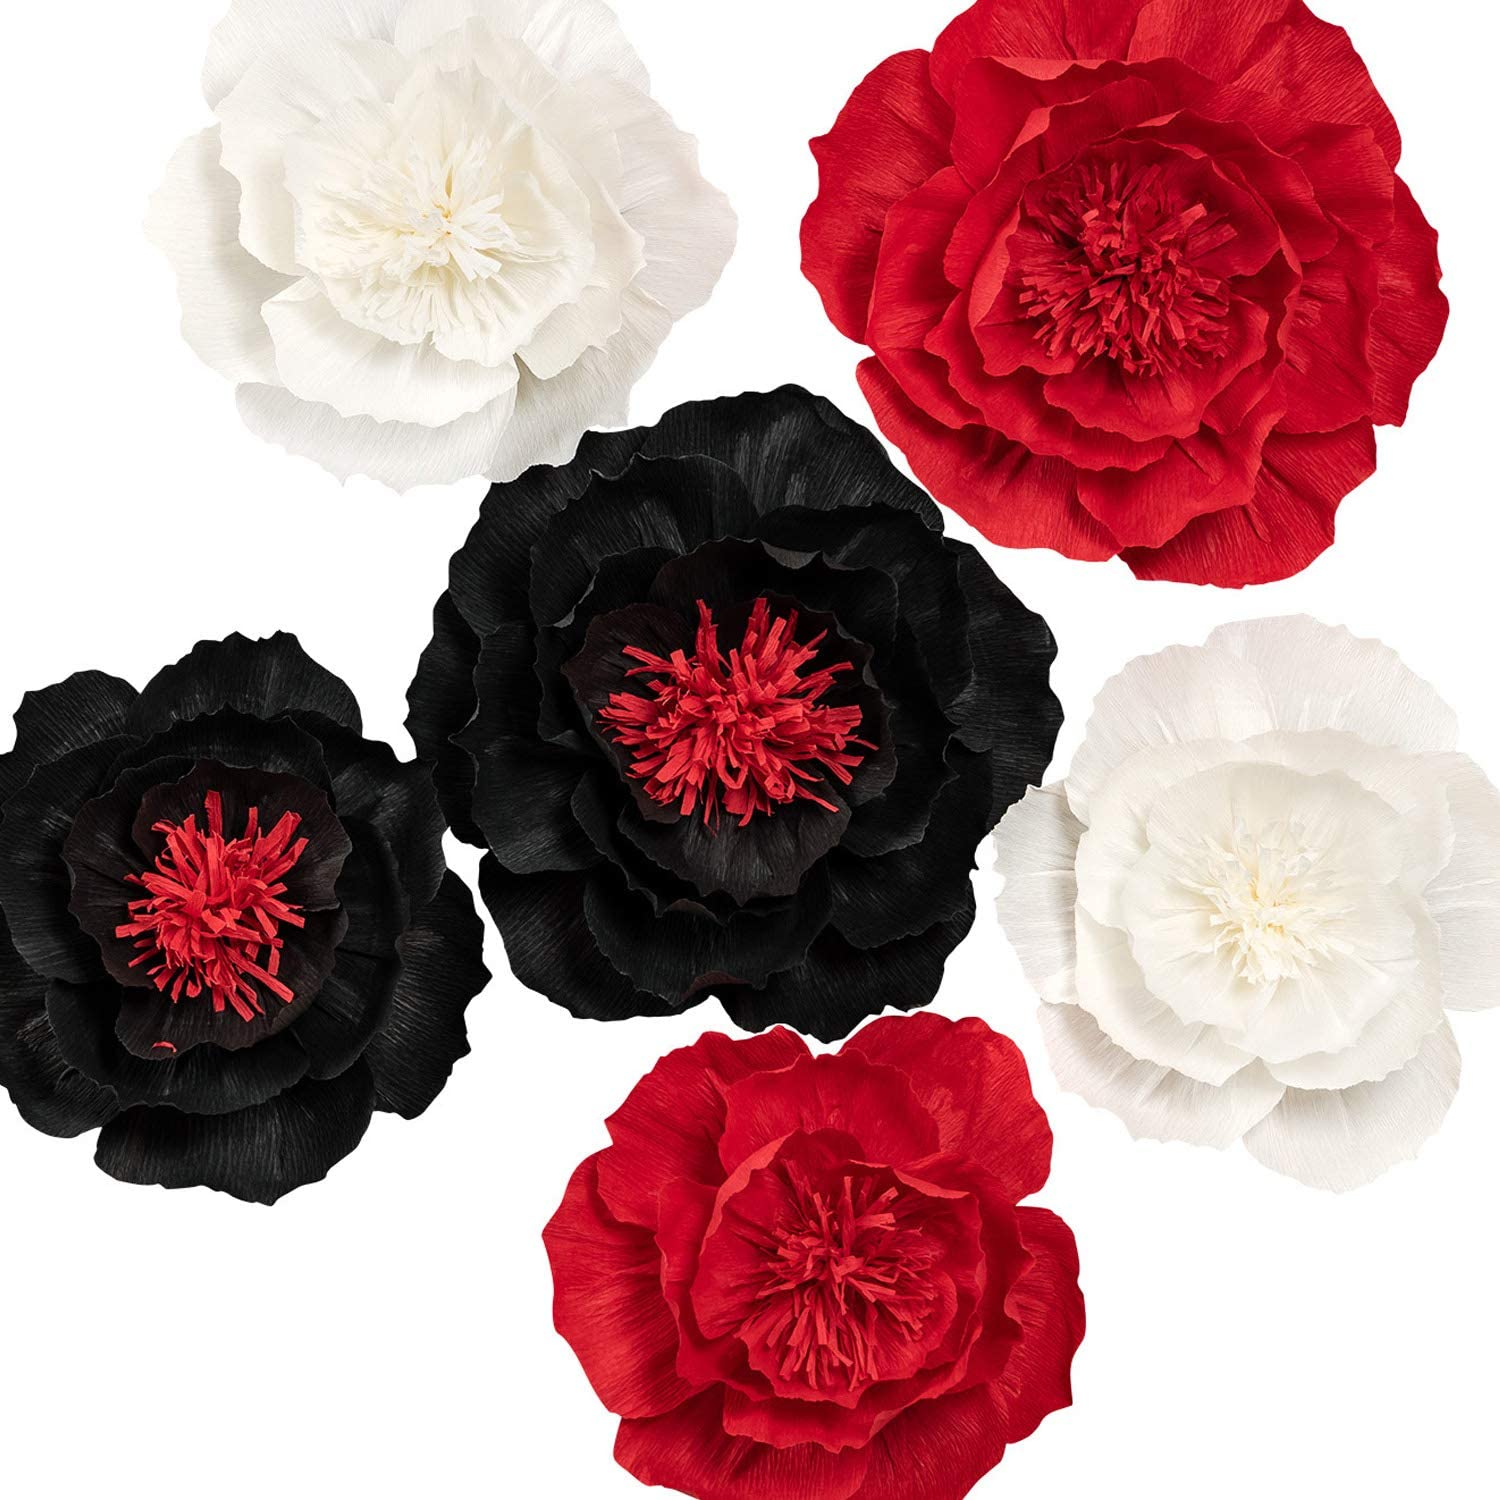 KEY SPRING Paper Flower Decorations, Large Crepe Paper Flowers, Giant Paper Flowers, Handcrafted Flowers (Black, Red, White Set of 6) for Wedding, Nursery Wall Decorations, Bridal Shower, Baby Shower